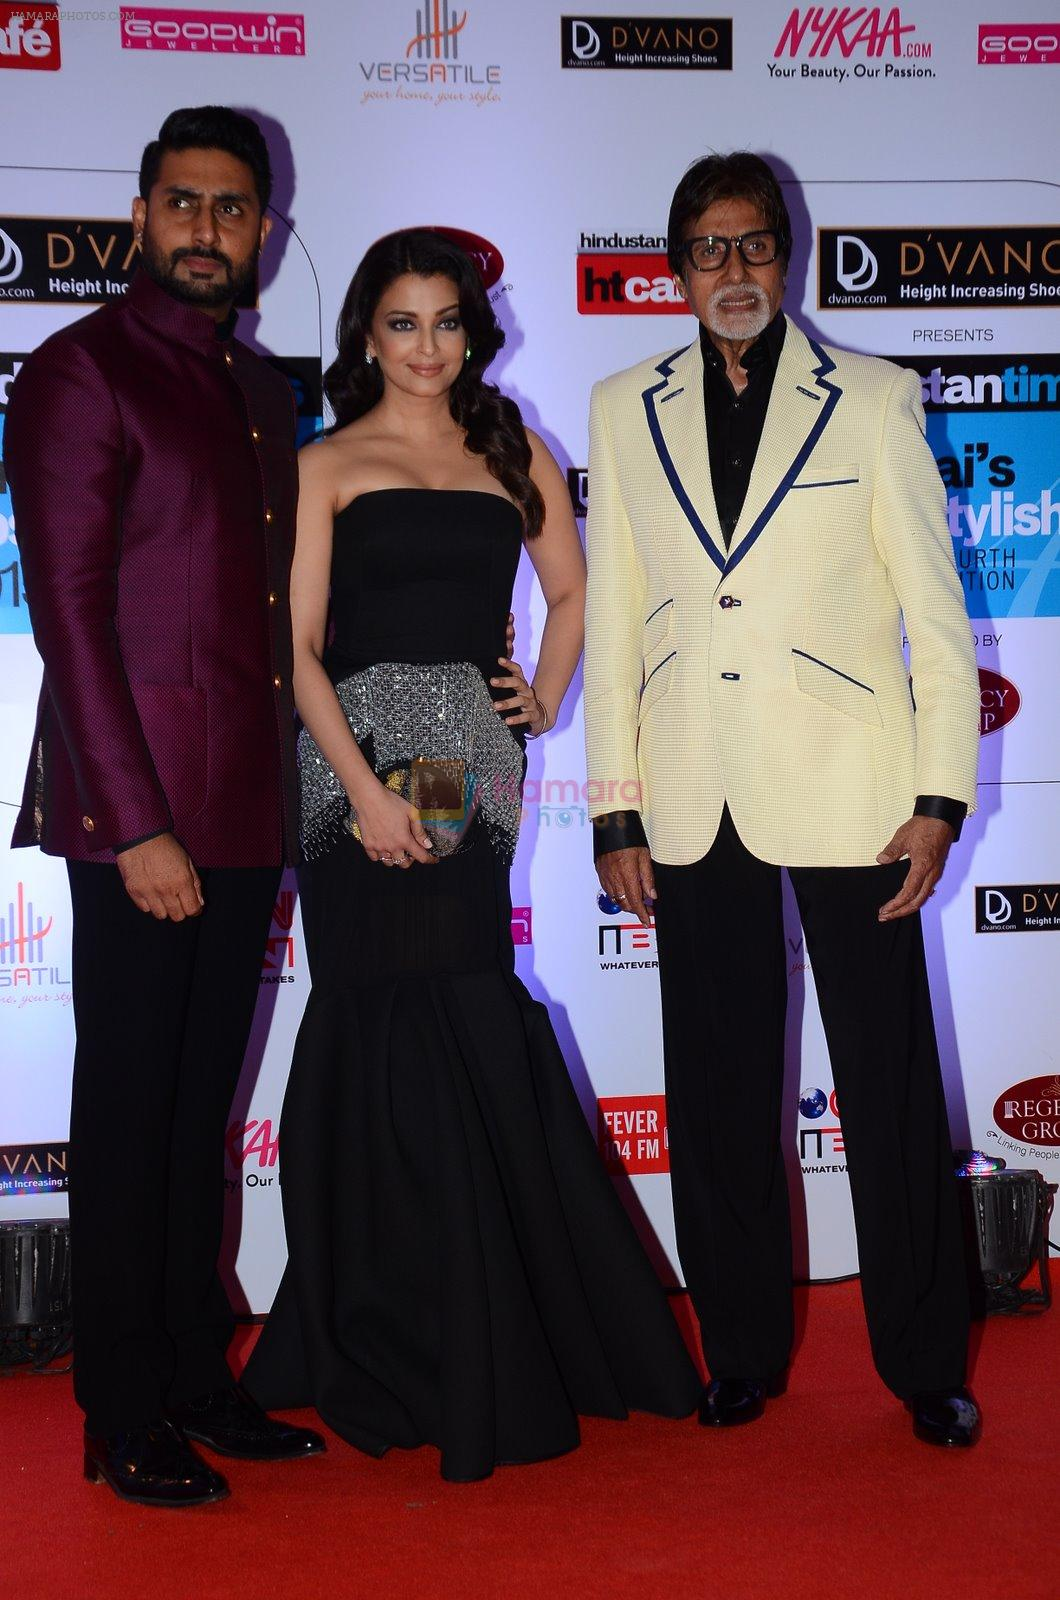 Abhishek Bachchan, Aishwarya Rai Bachchan, Amitabh Bachchan at HT Mumbai's Most Stylish Awards 2015 in Mumbai on 26th March 2015